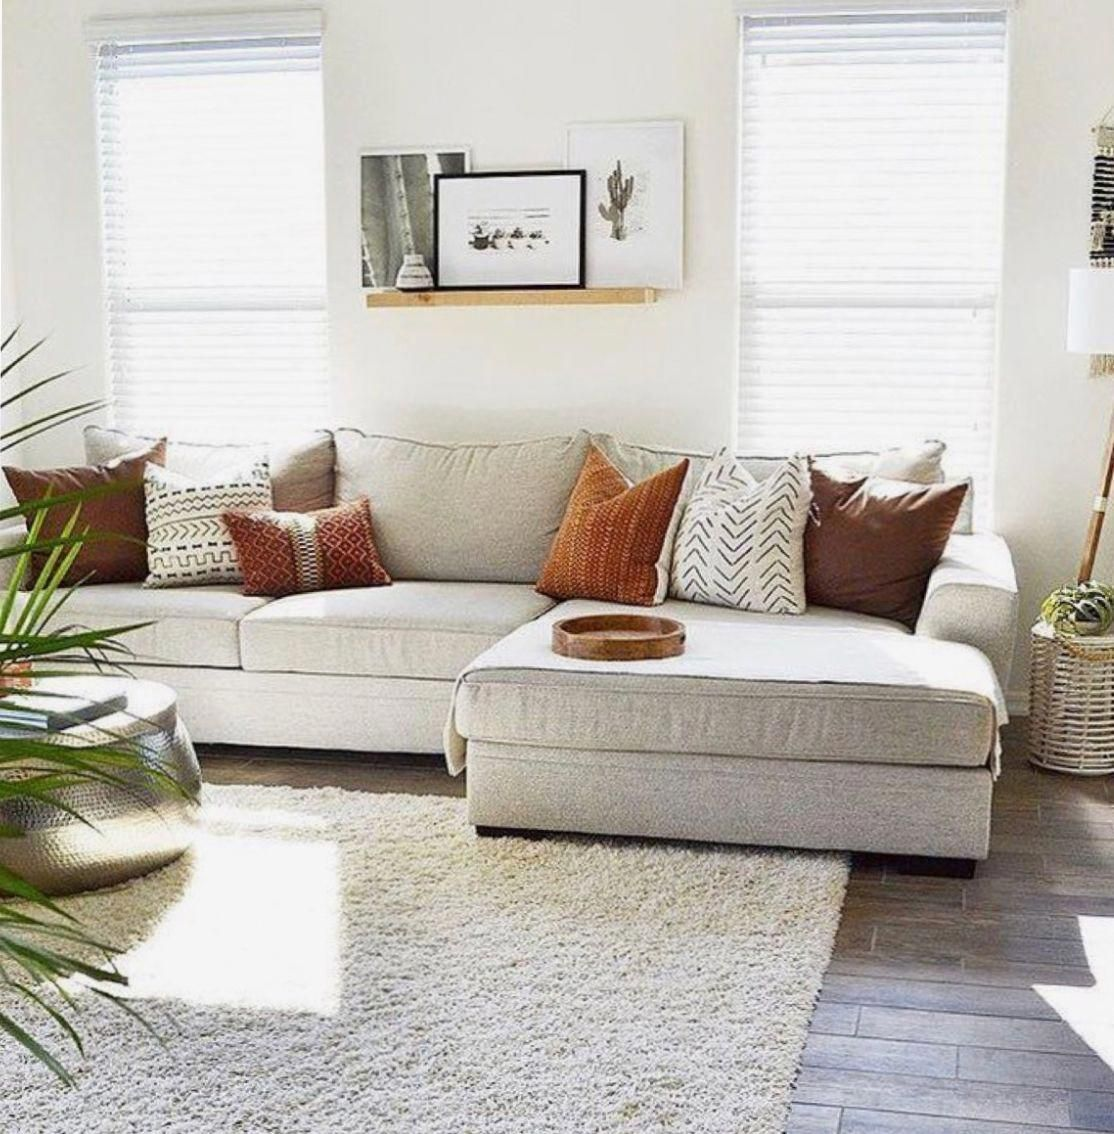 Small Living Room Decorating Ideas Decorative Accessories For